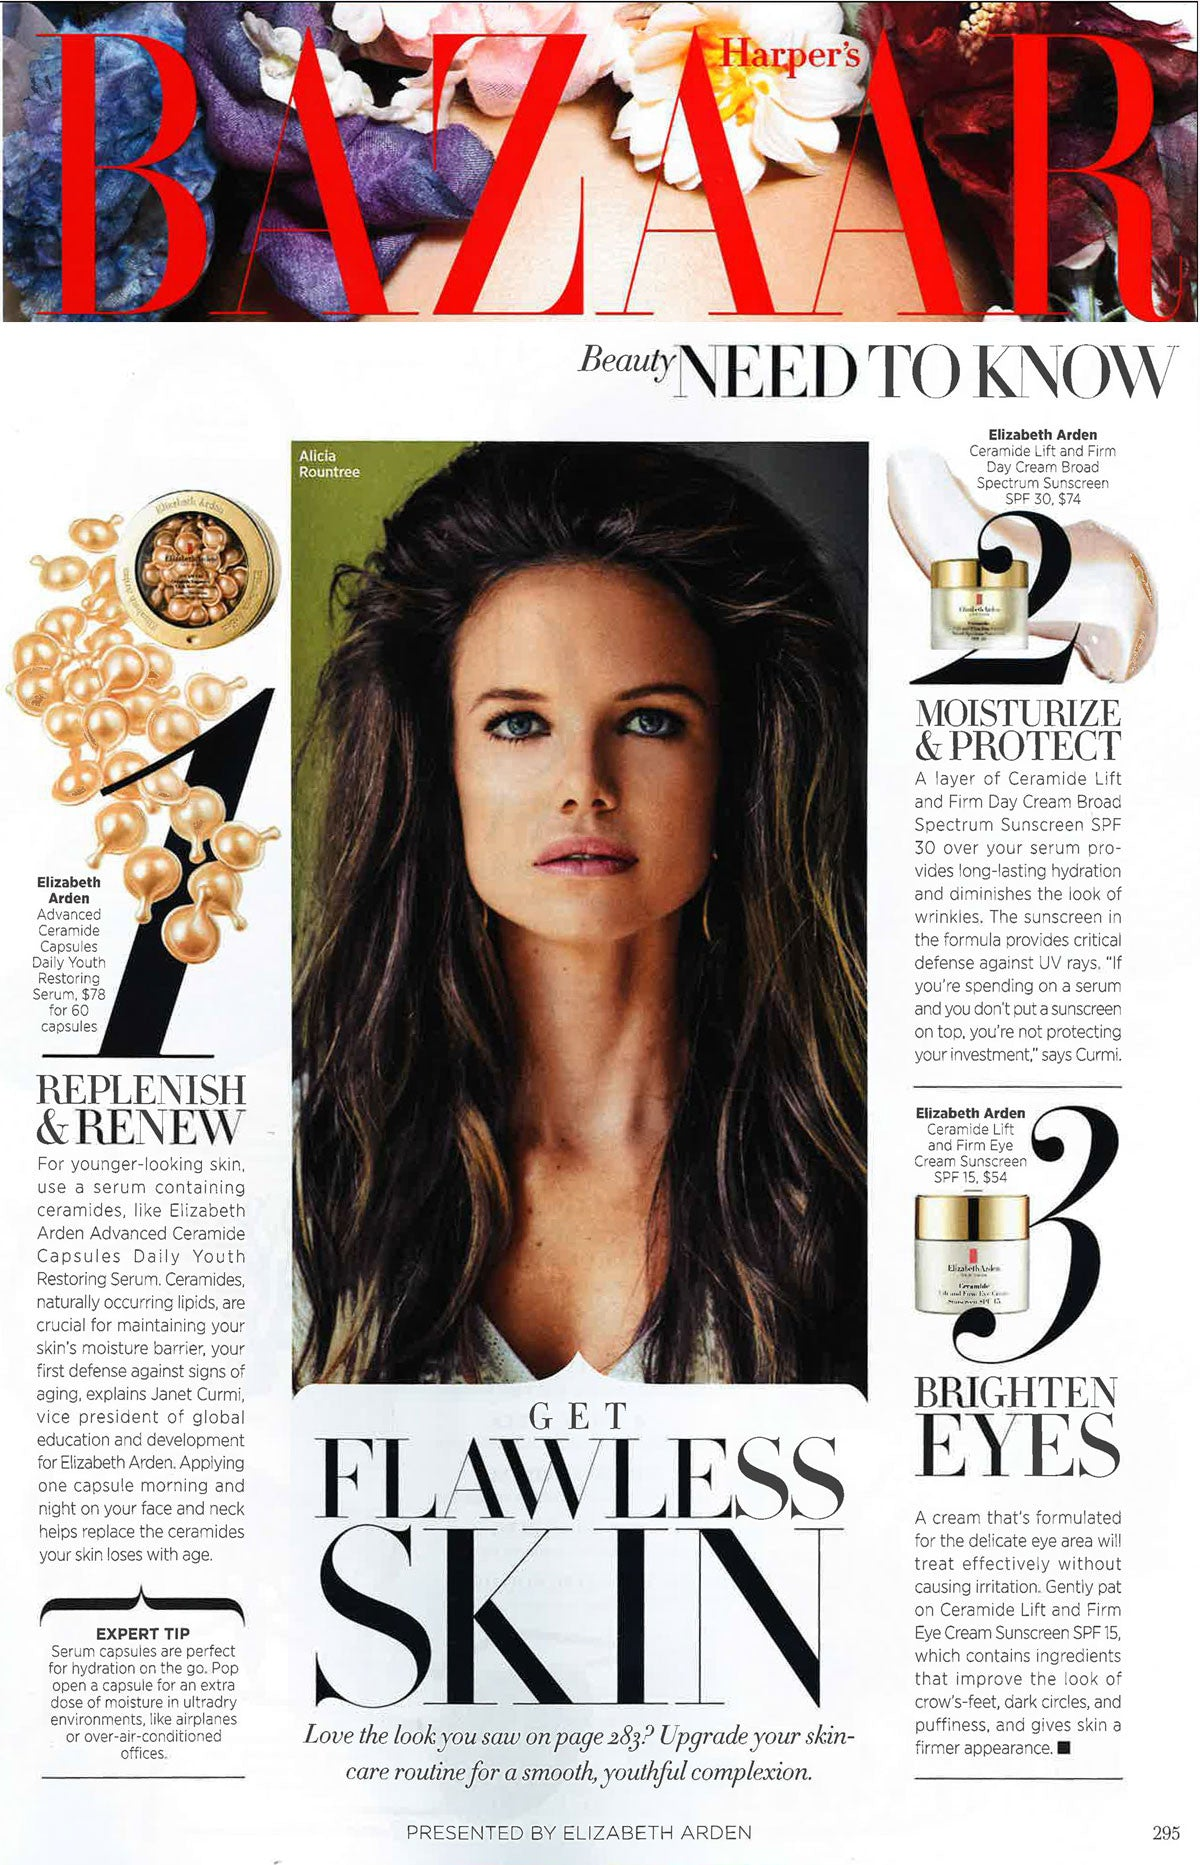 Marco Bicego Jaipur Earrings in Harper's Bazaar